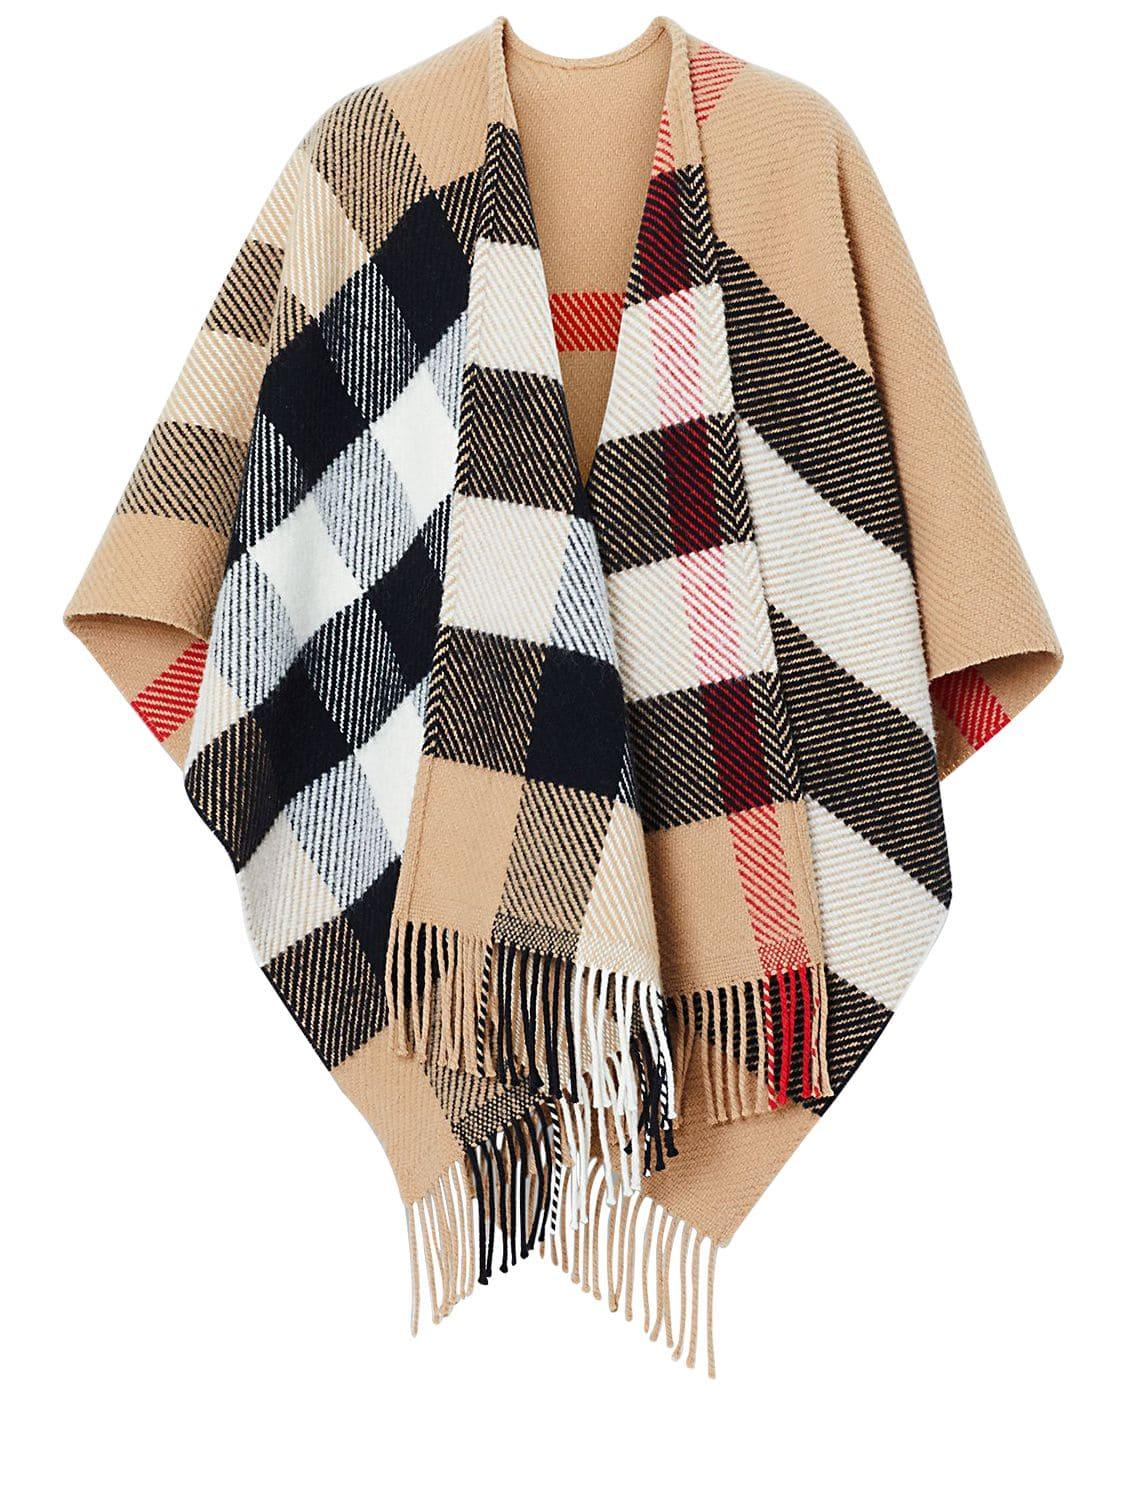 477aeca2c Burberry Classic Check Wool & Cashmere Cape - Lyst